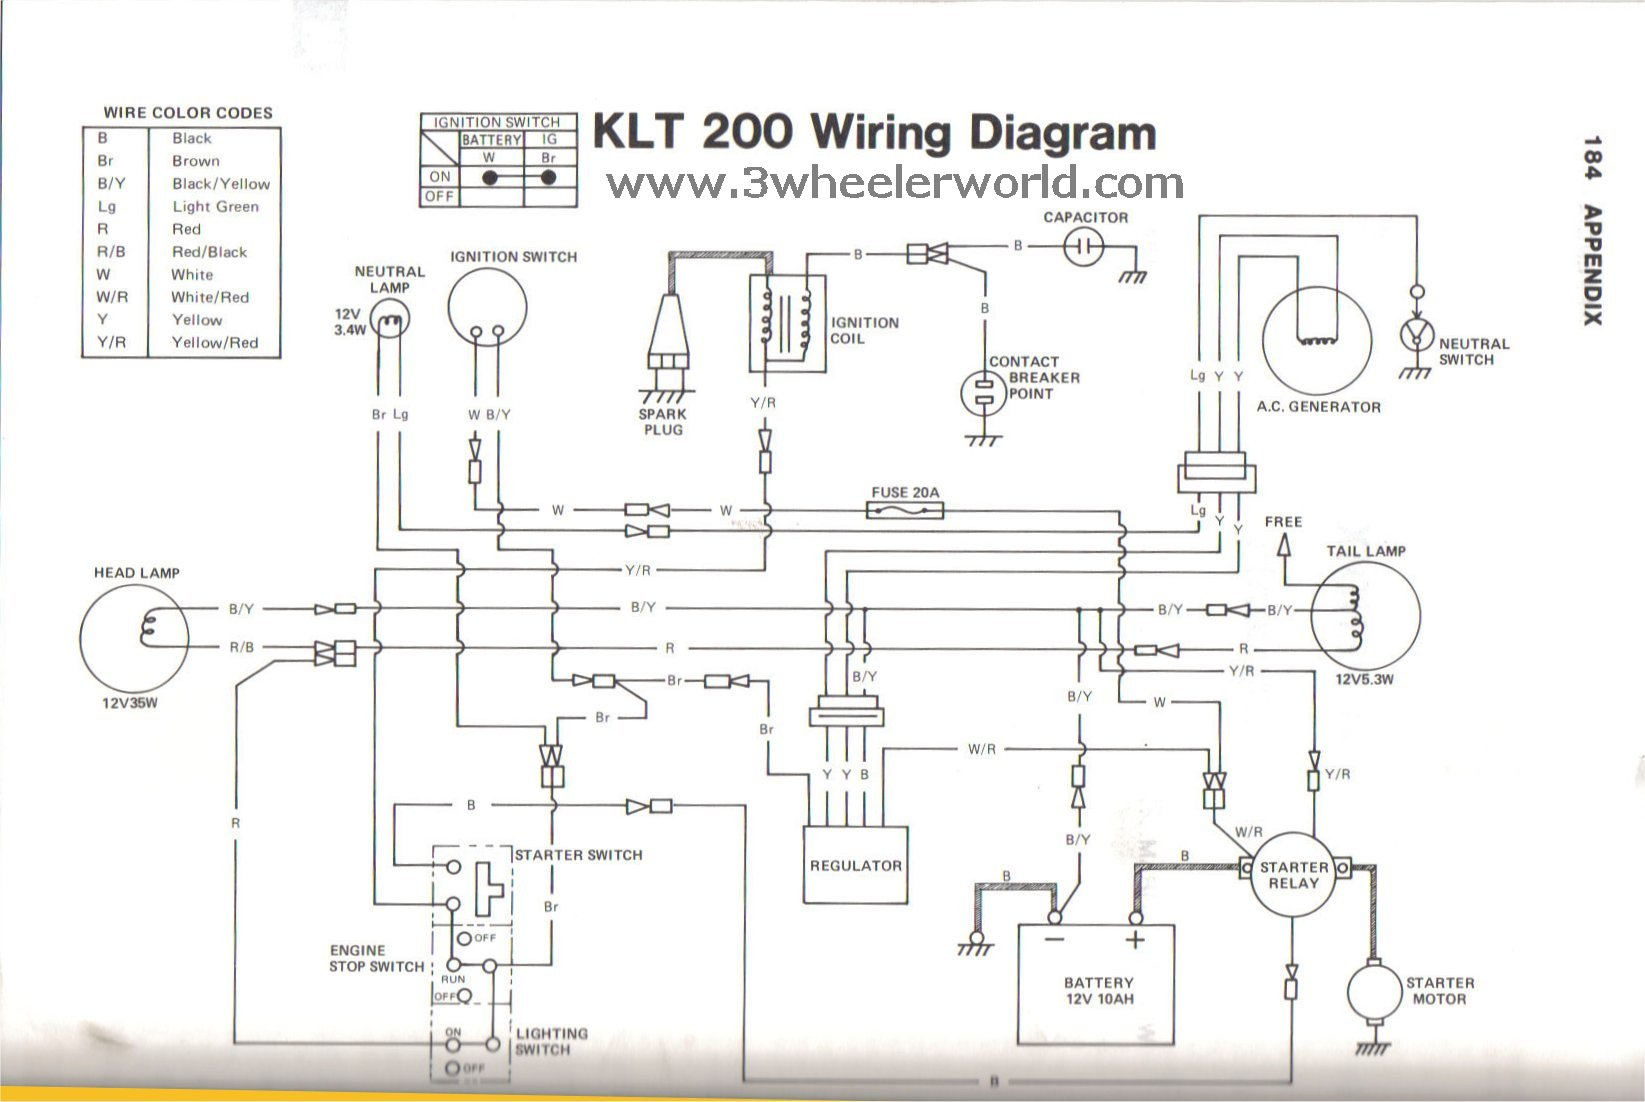 DIAGRAM] Yamaha Rd 200 Wiring Diagram FULL Version HD Quality Wiring Diagram  - 1HOAWIRING1.LALIBRAIRIEDELOUVIERS.FR